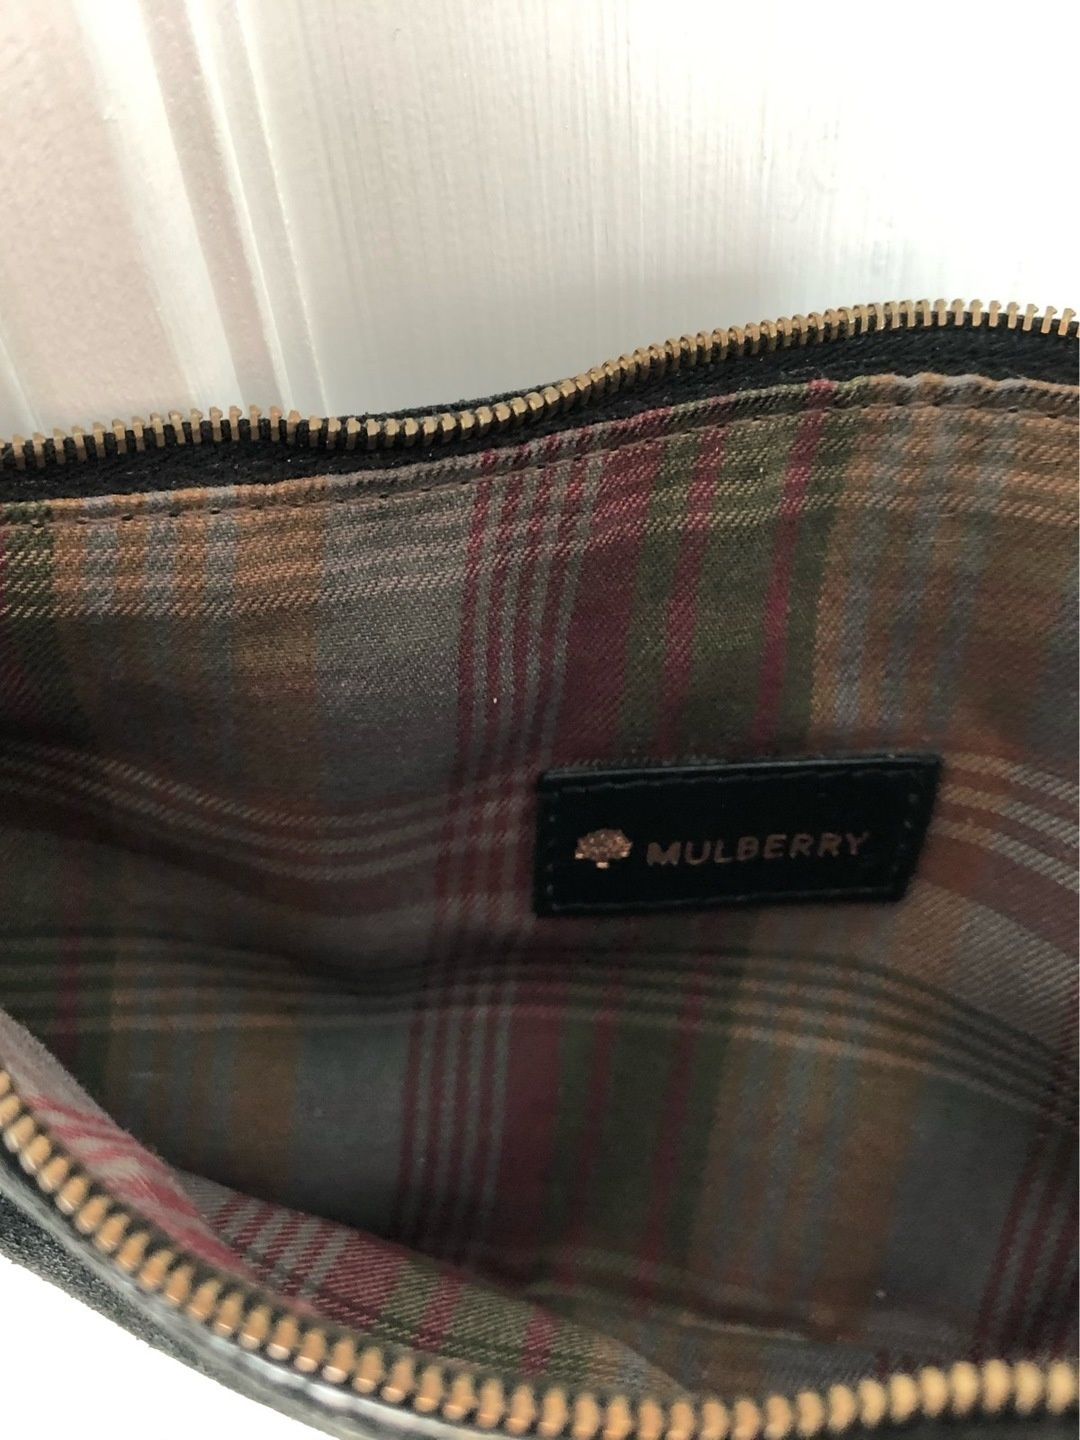 Women's bags & purses - MULBERRY photo 4